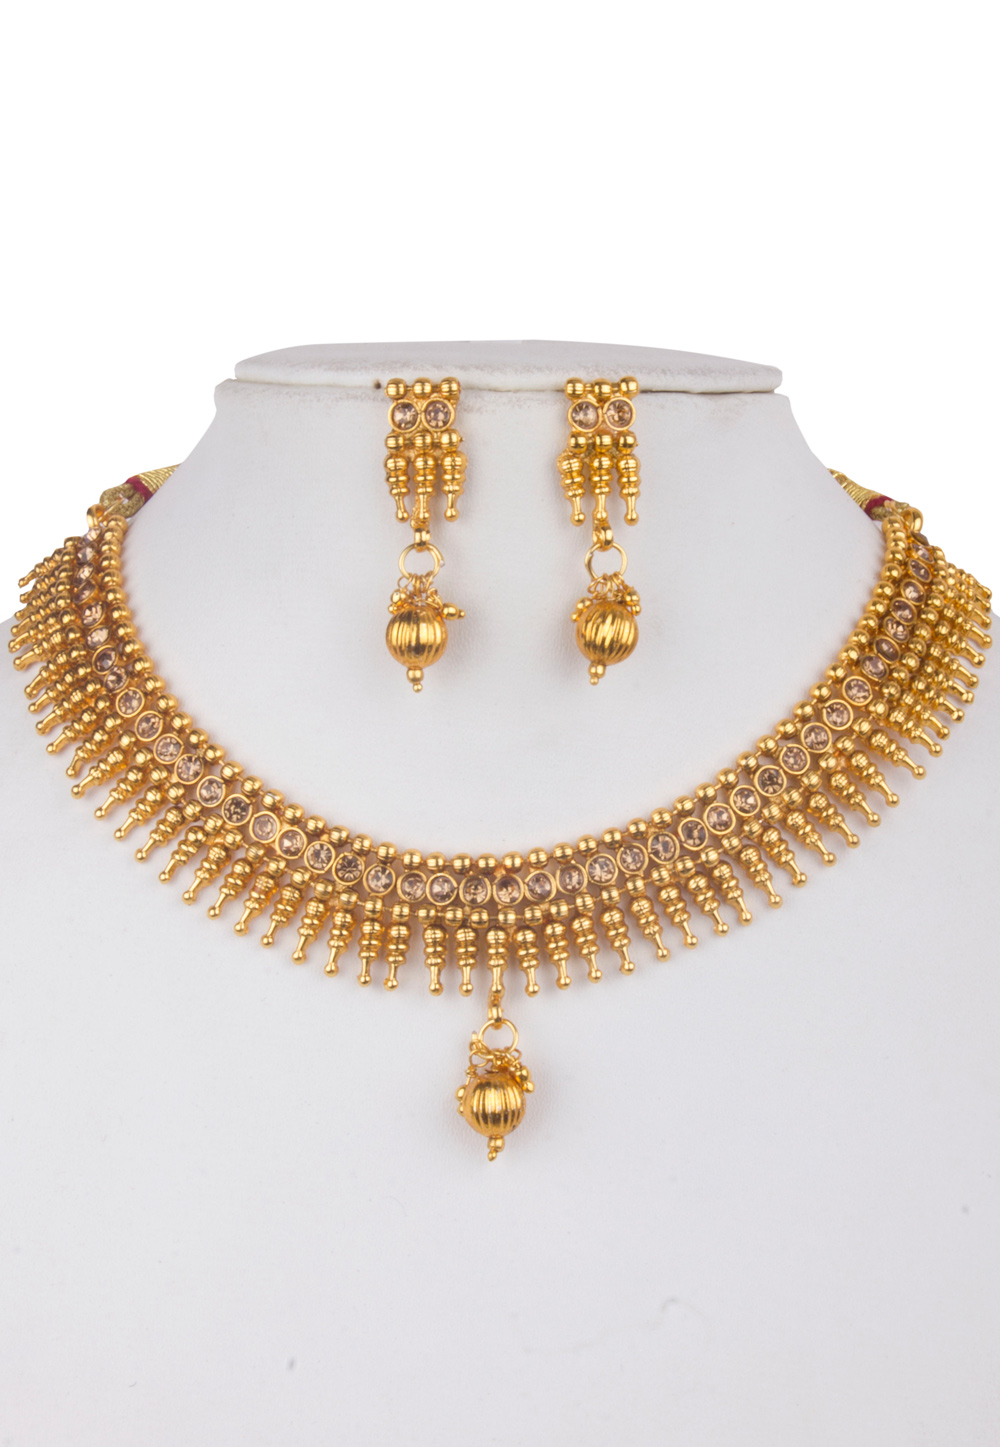 Golden Alloy Kundan Necklace With Earrings 156254